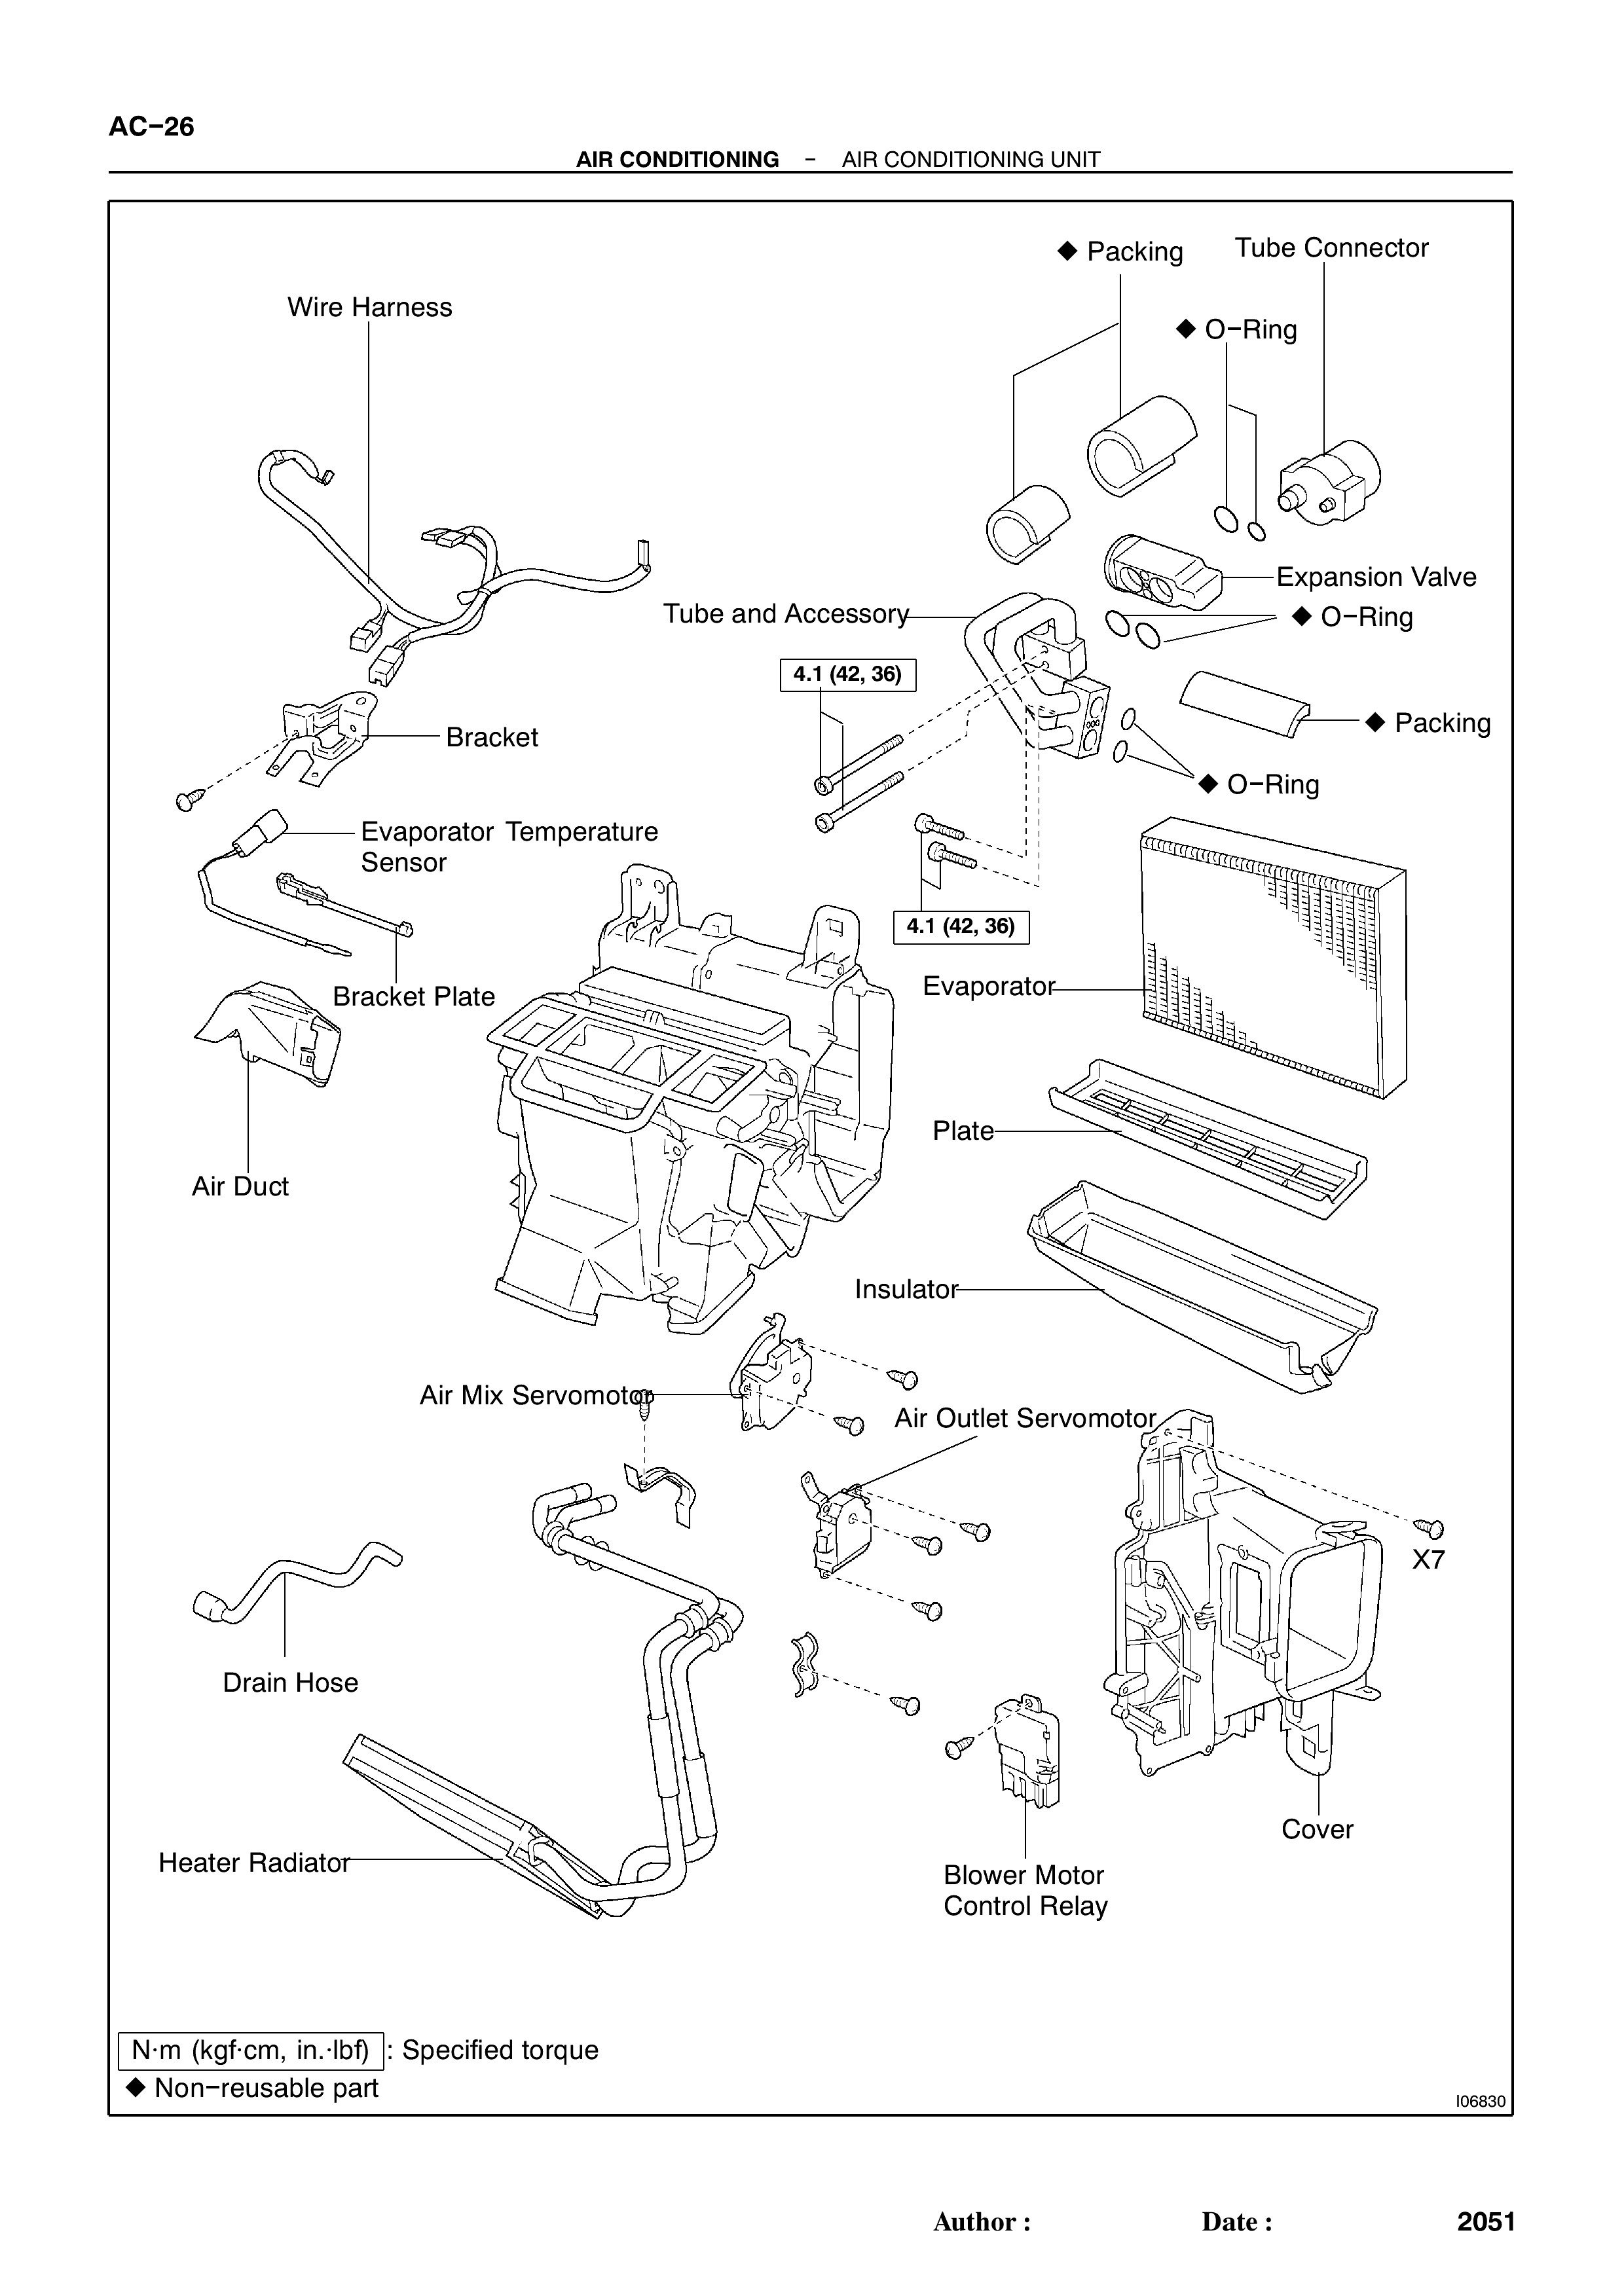 2000 Lexus Gs300 Engine Diagram Heater Core Wiring Diagrams – Diagram Of Engine For 1999 Lexus Rx300 Awd